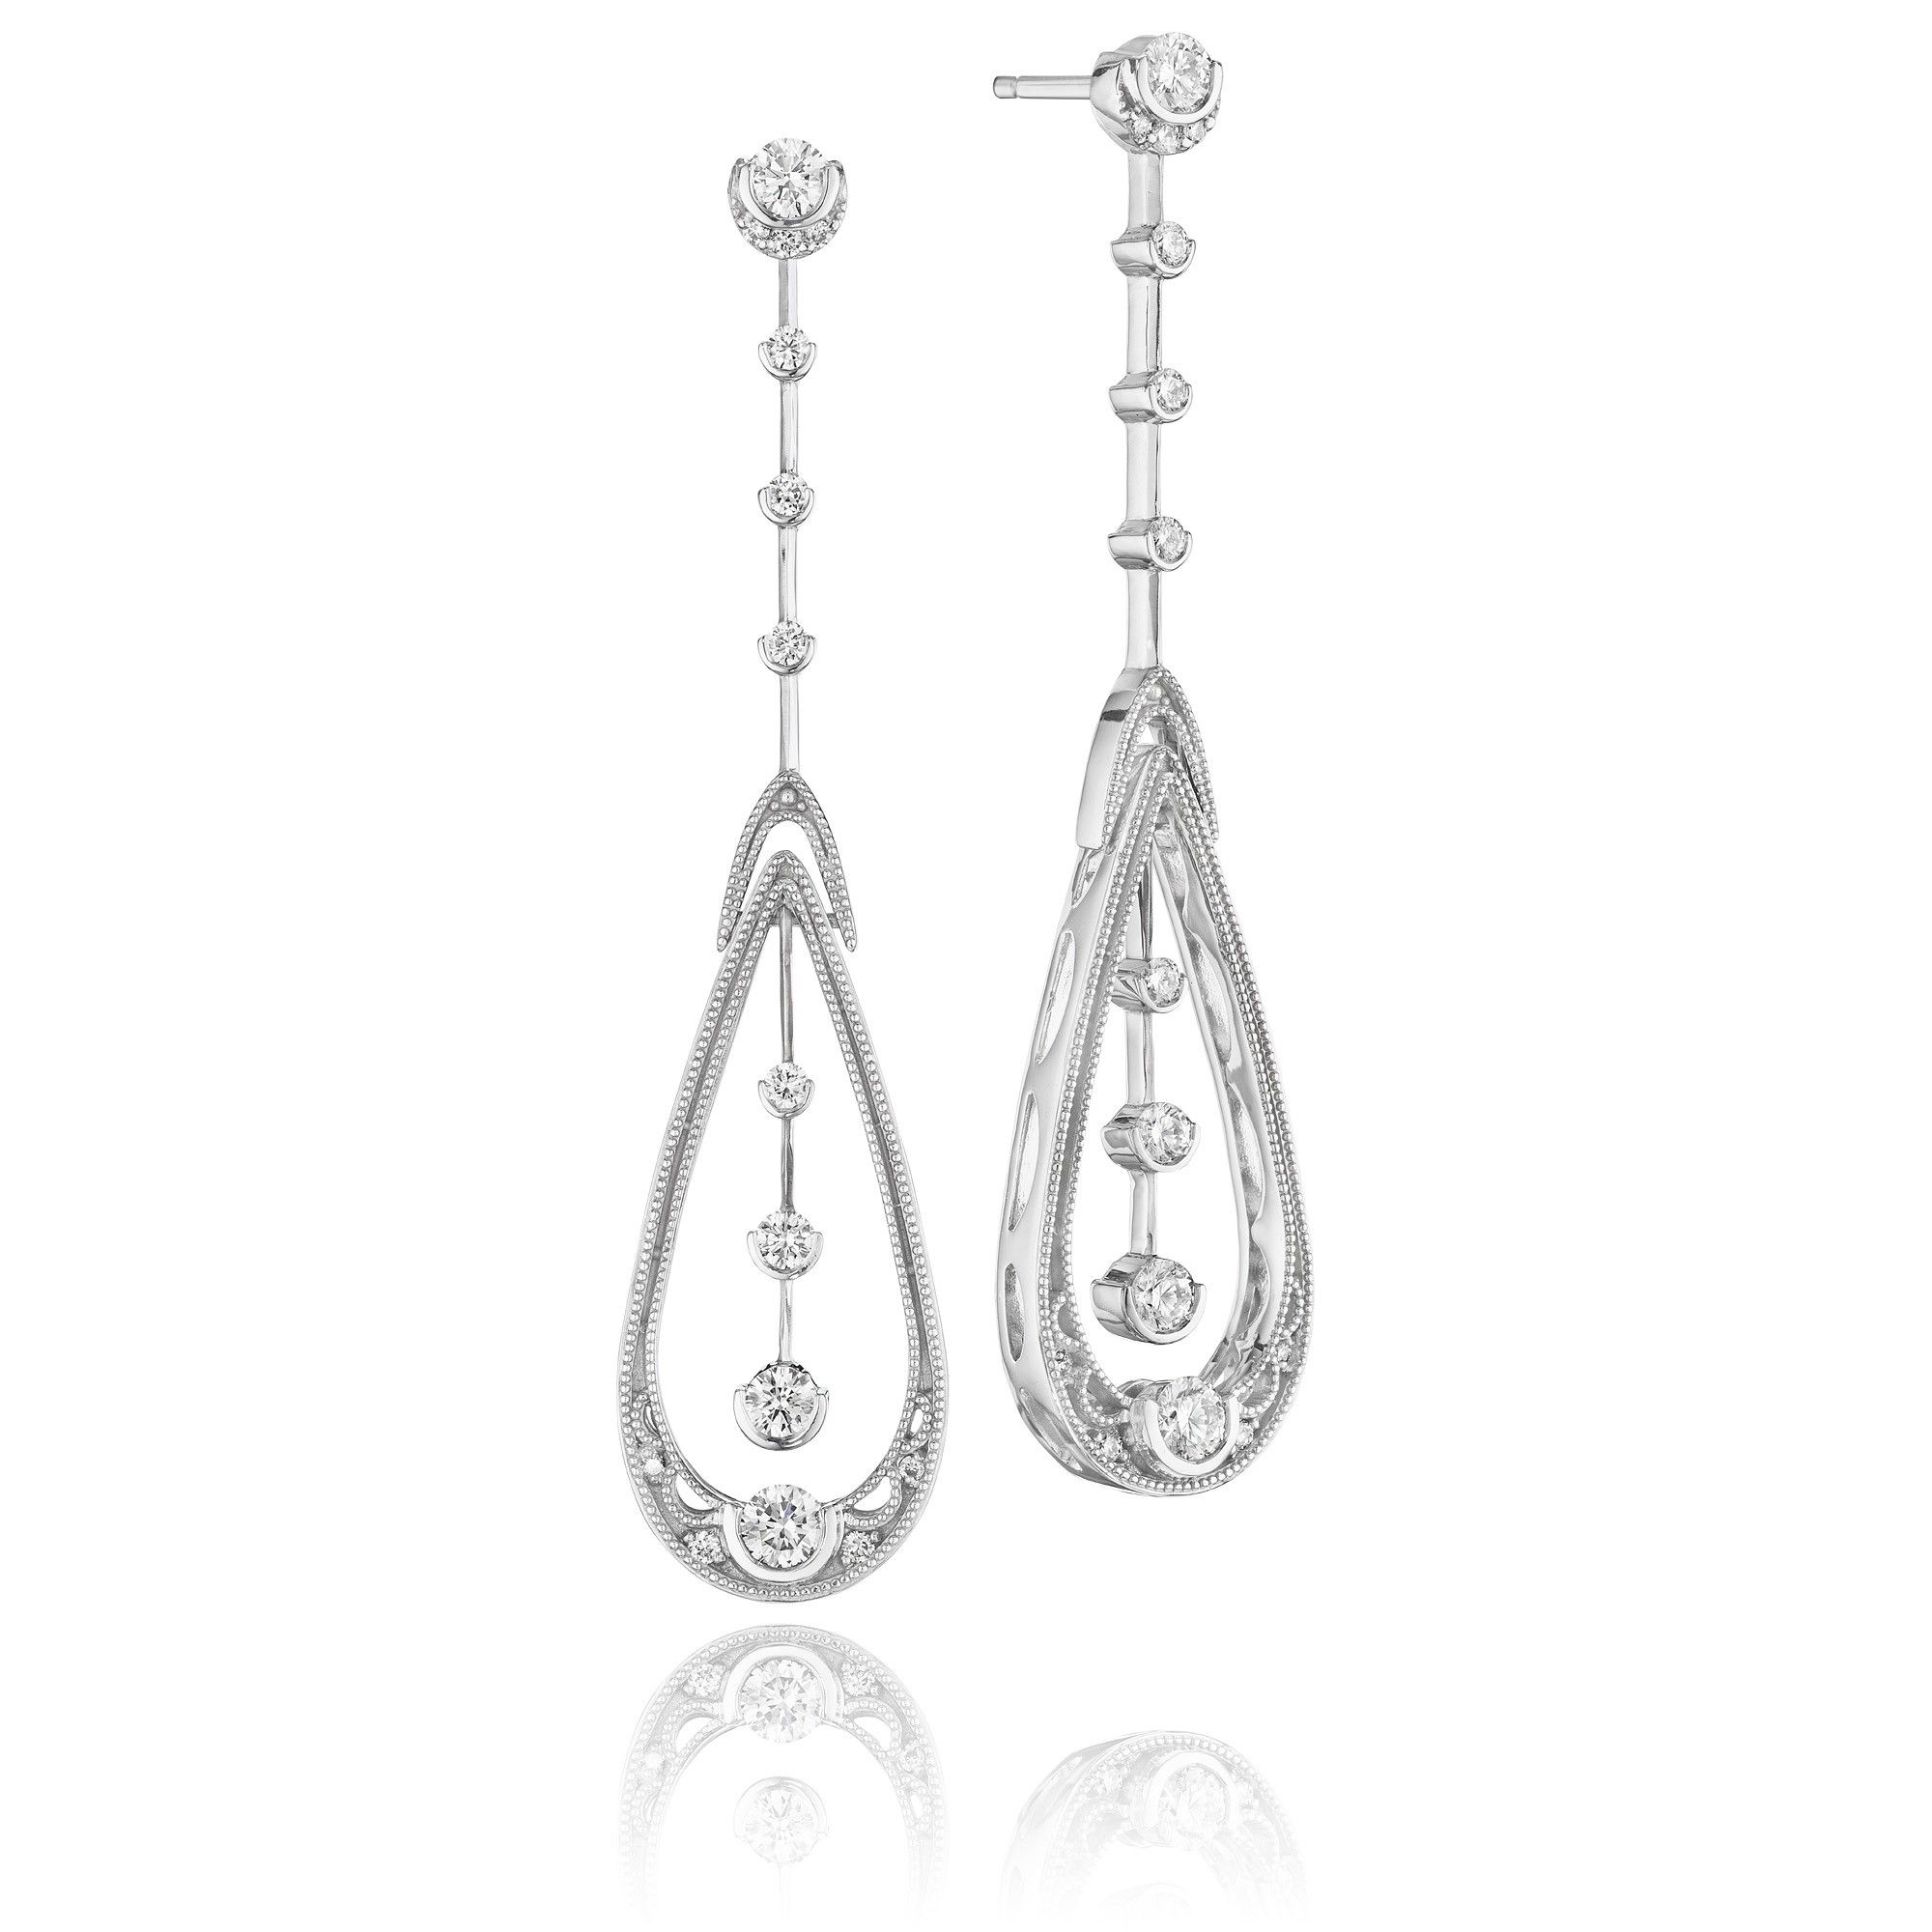 Diamonds appear to defy gravity inside an elegantly elongated pear shape on these ultra-sophisticated pair earrings for the Diamonds on the Moon collection by Tacori.